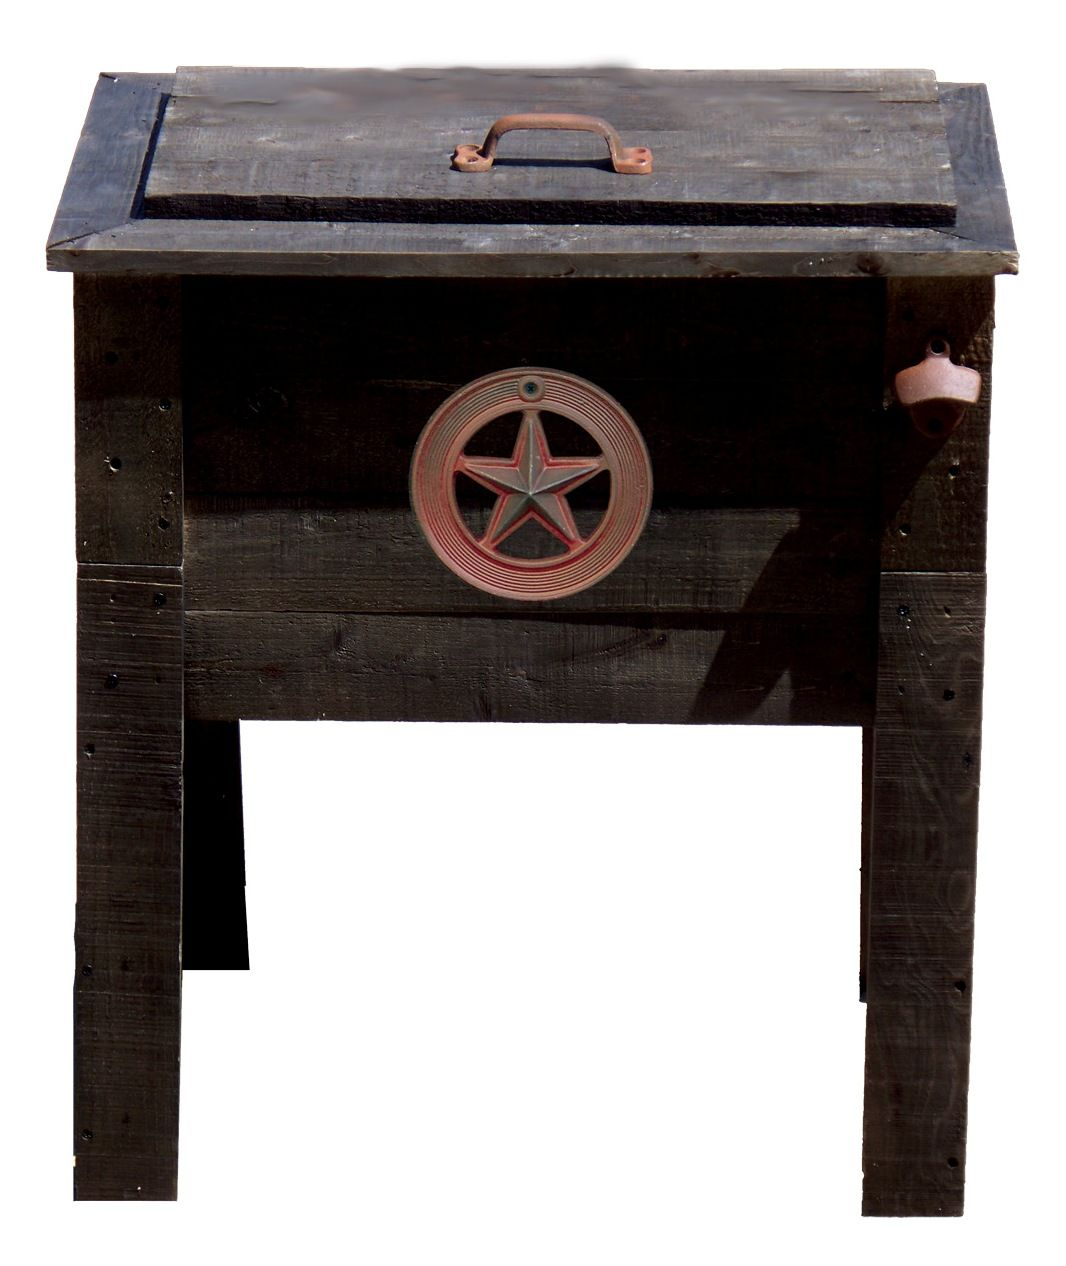 Outdoor Ventures 57 Qt Rustic Wooden Deck Cooler Star